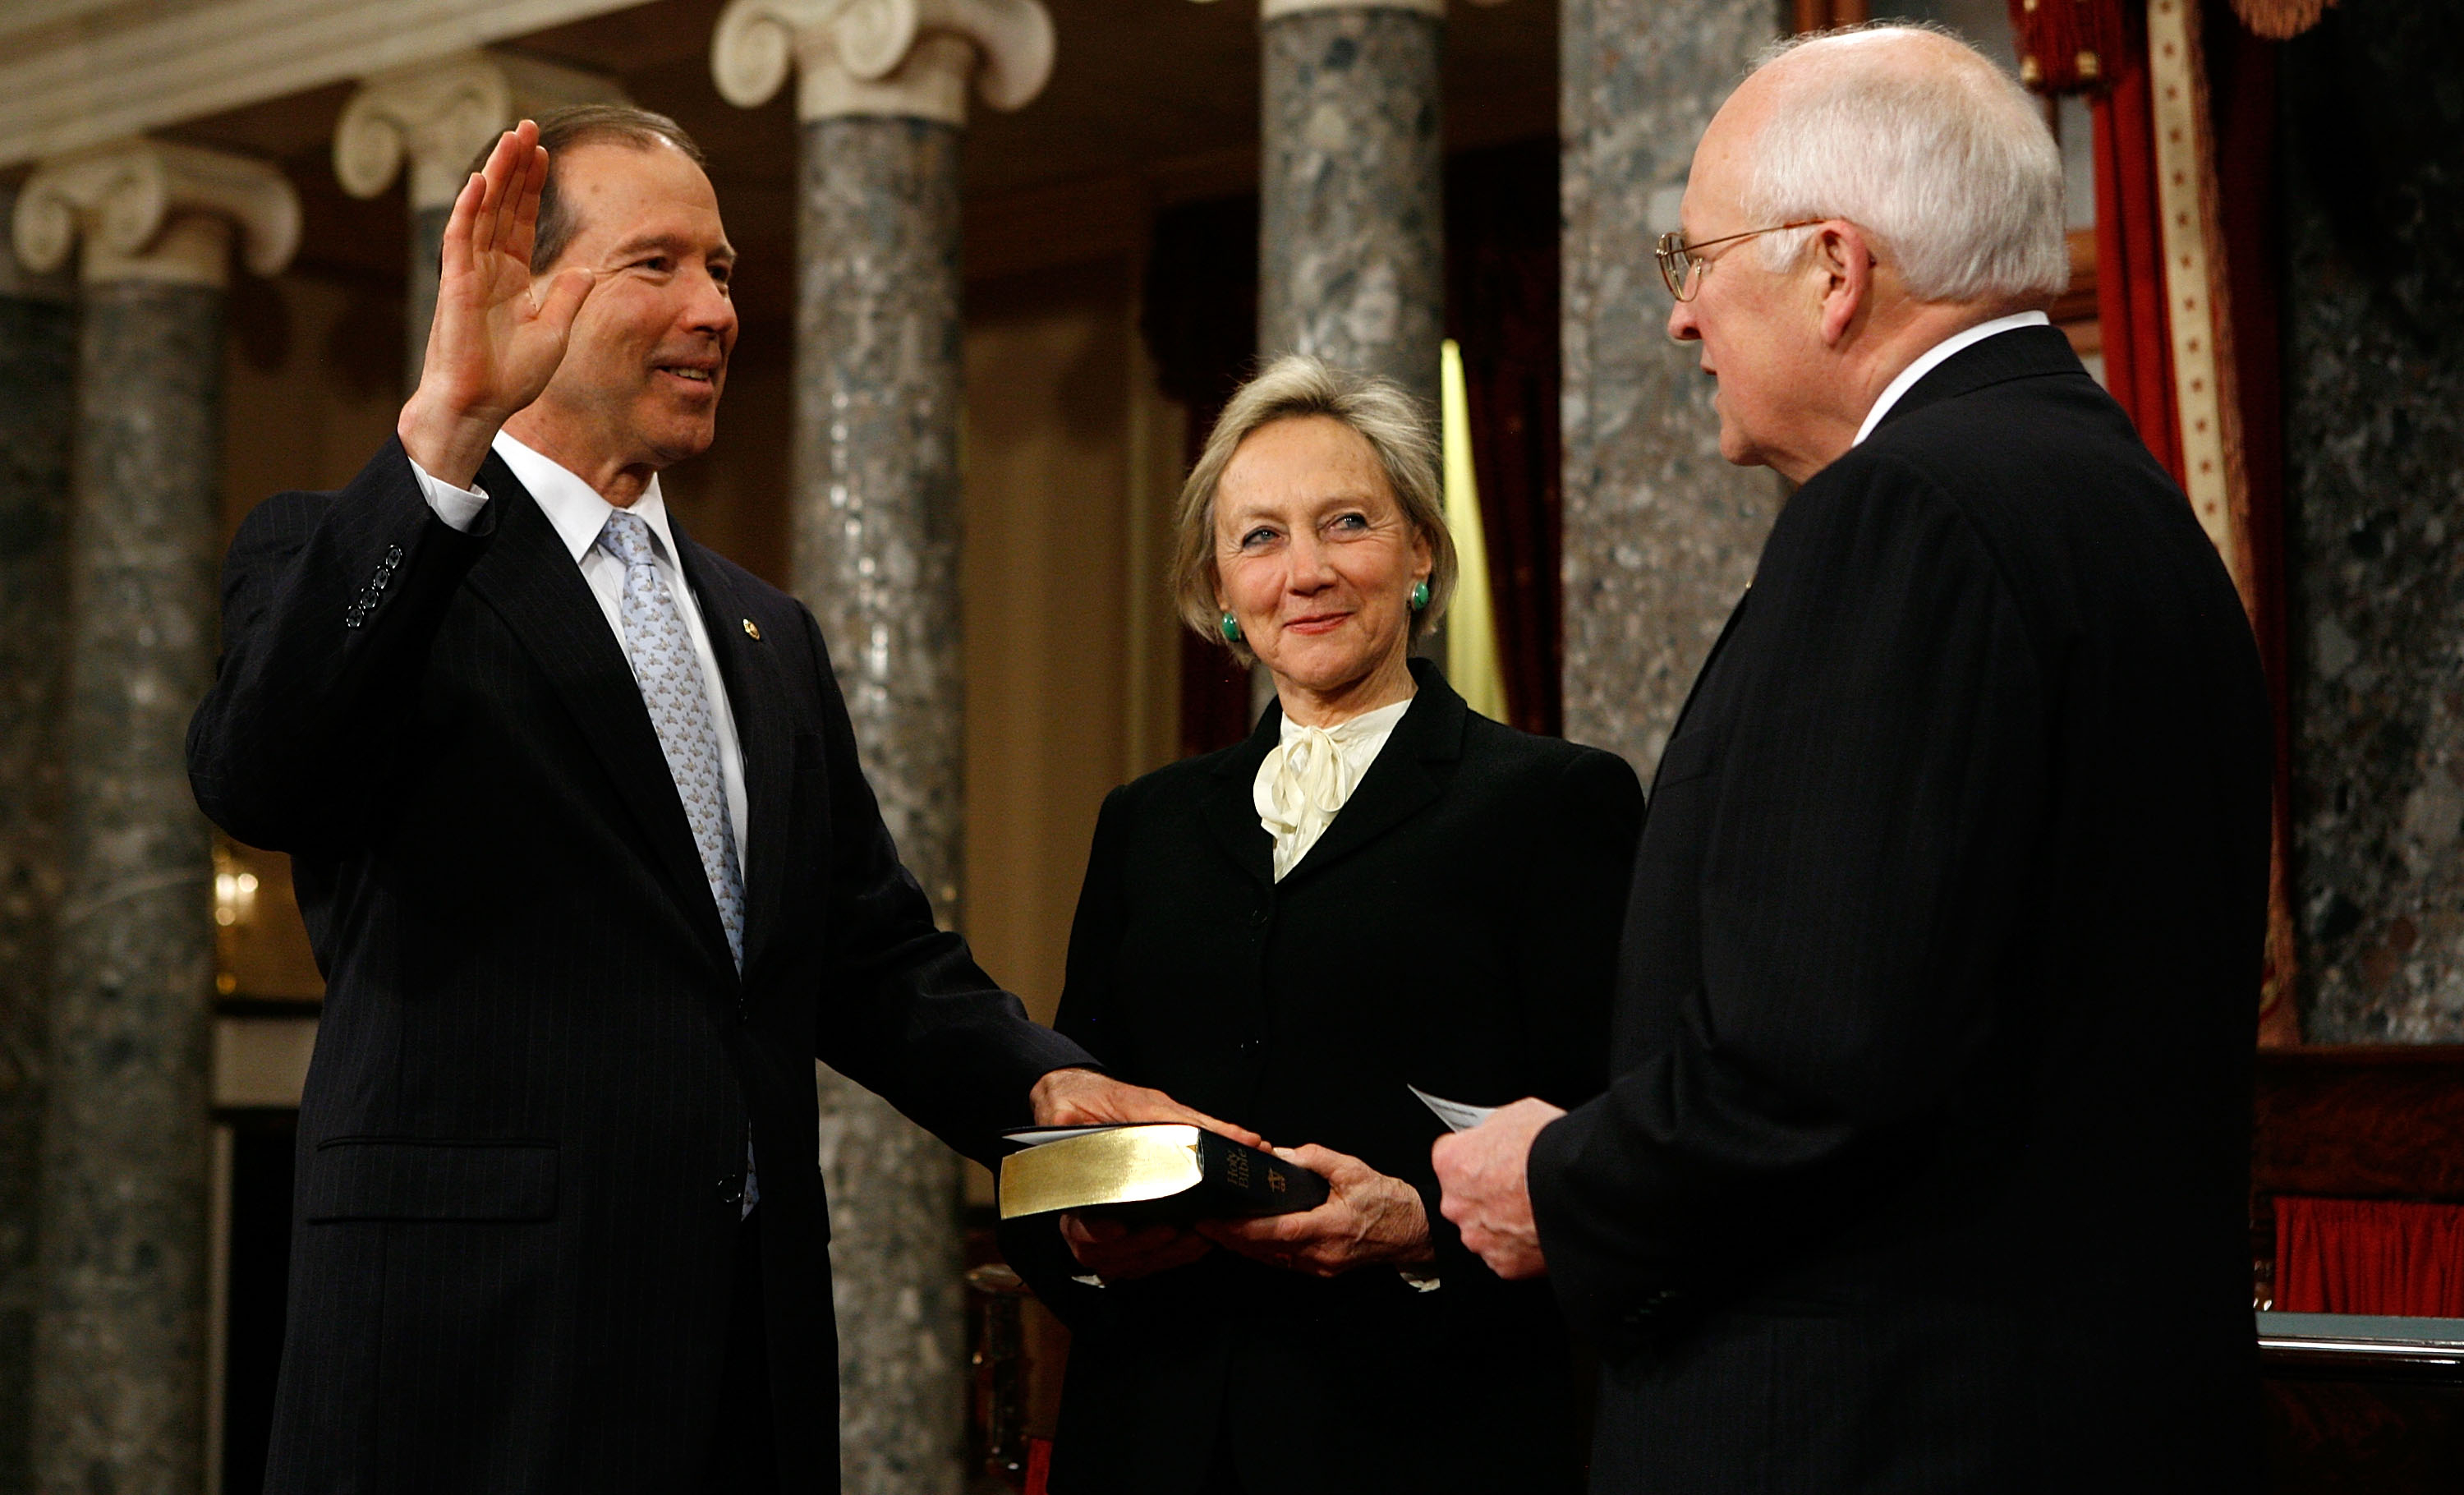 U.S. Sen. Tom Udall (D-N.M.), left, poses for photographers with his wife Jill (C) and former Vice President Dick Cheney, right, during a mock swearing-in ceremony on Capitol Hill January 6, 2009 in Washington, DC. (Photo by Alex Wong/Getty Images)